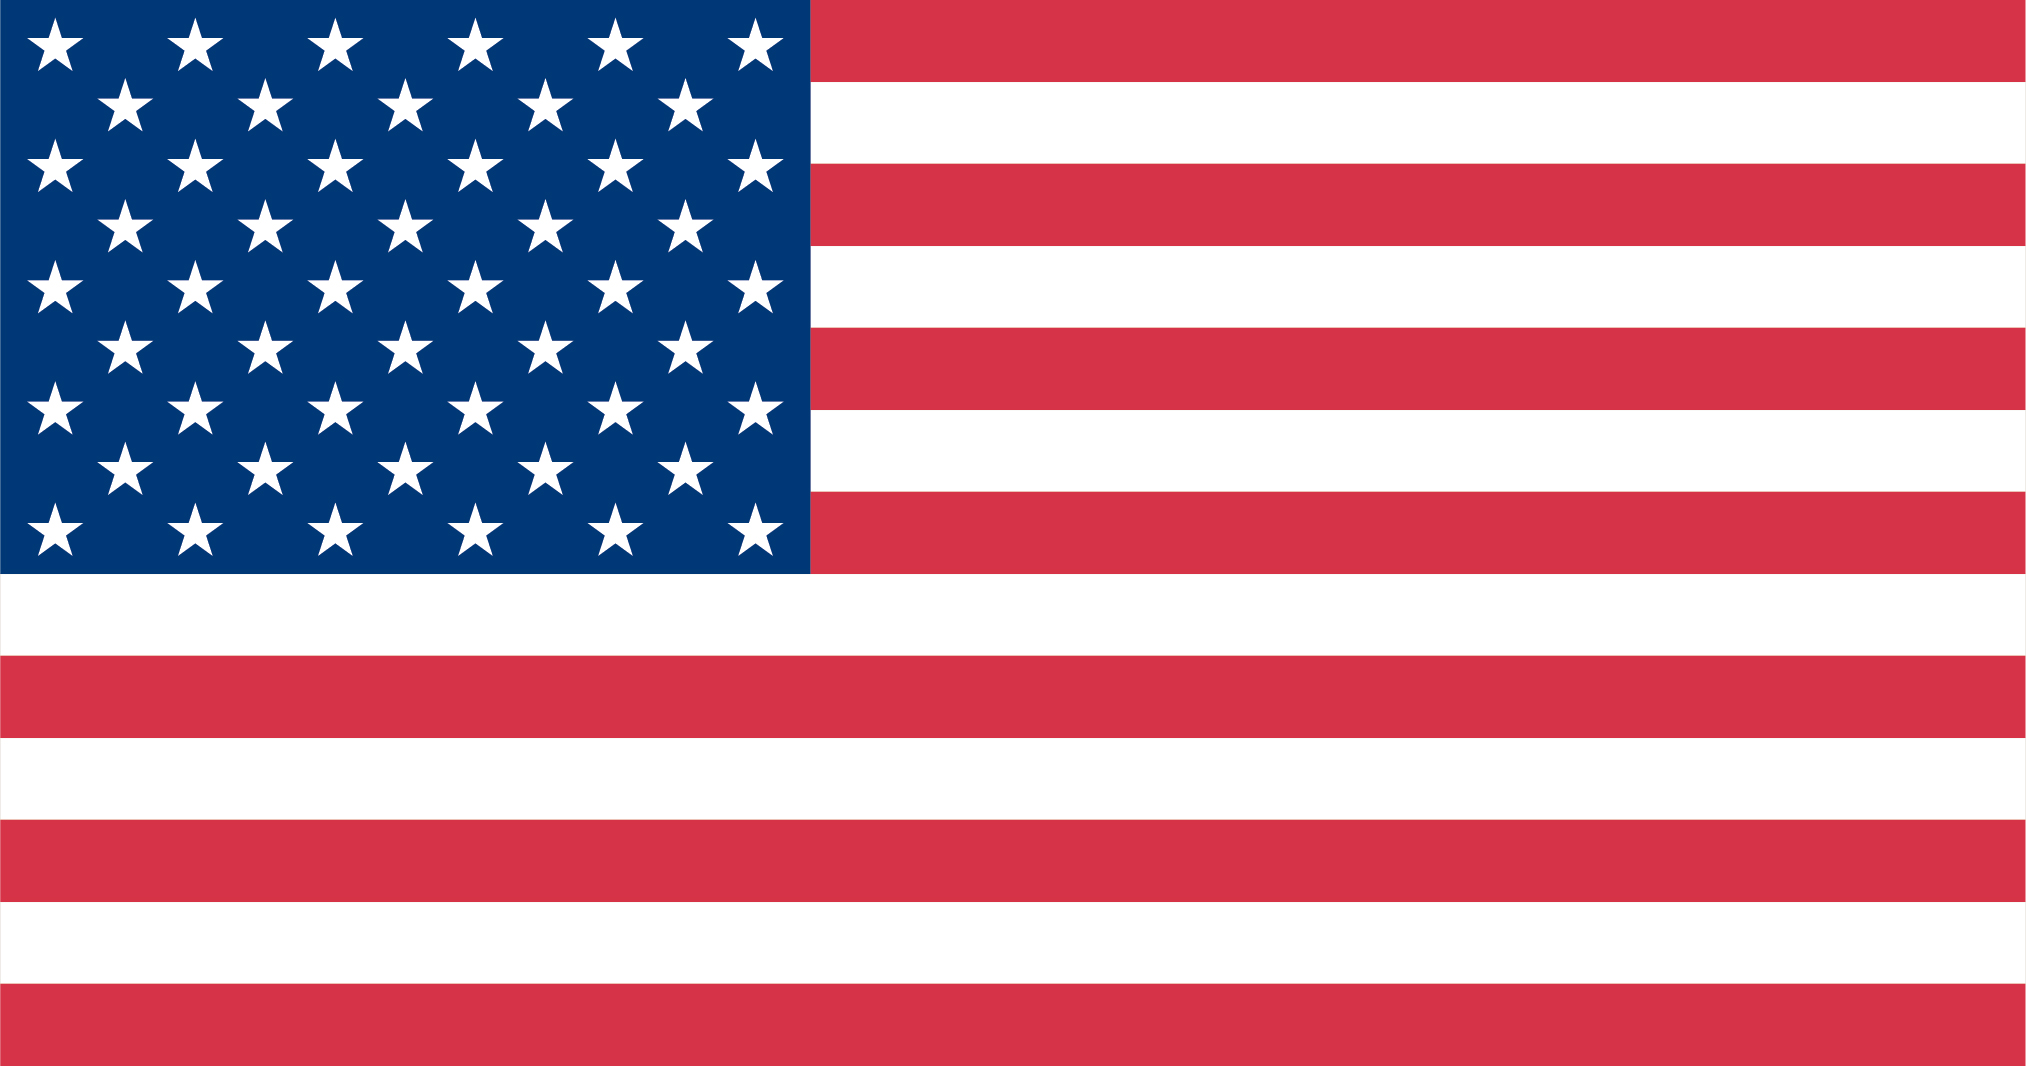 US_Flag_Color_300dpi